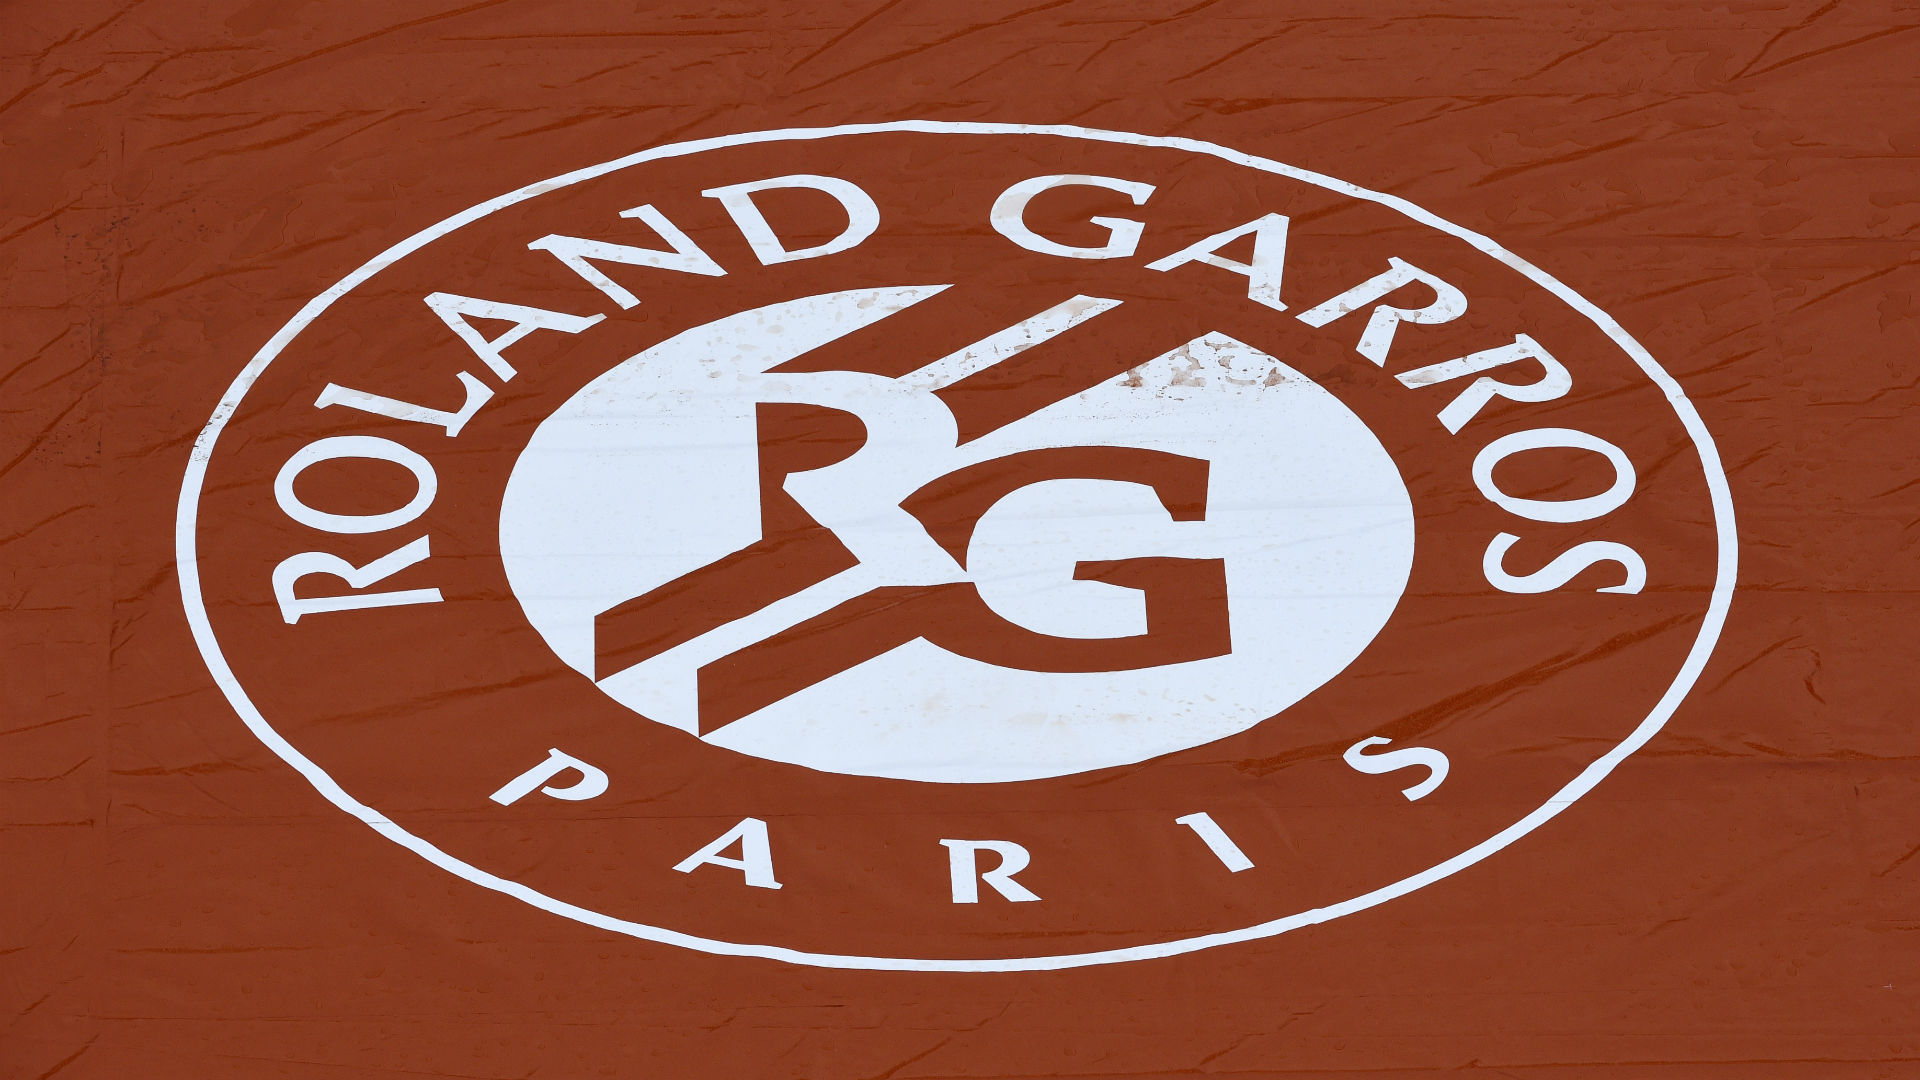 French Open schedule 2020: TV coverage, channels & more to watch every match in tennis Grand Slam 1